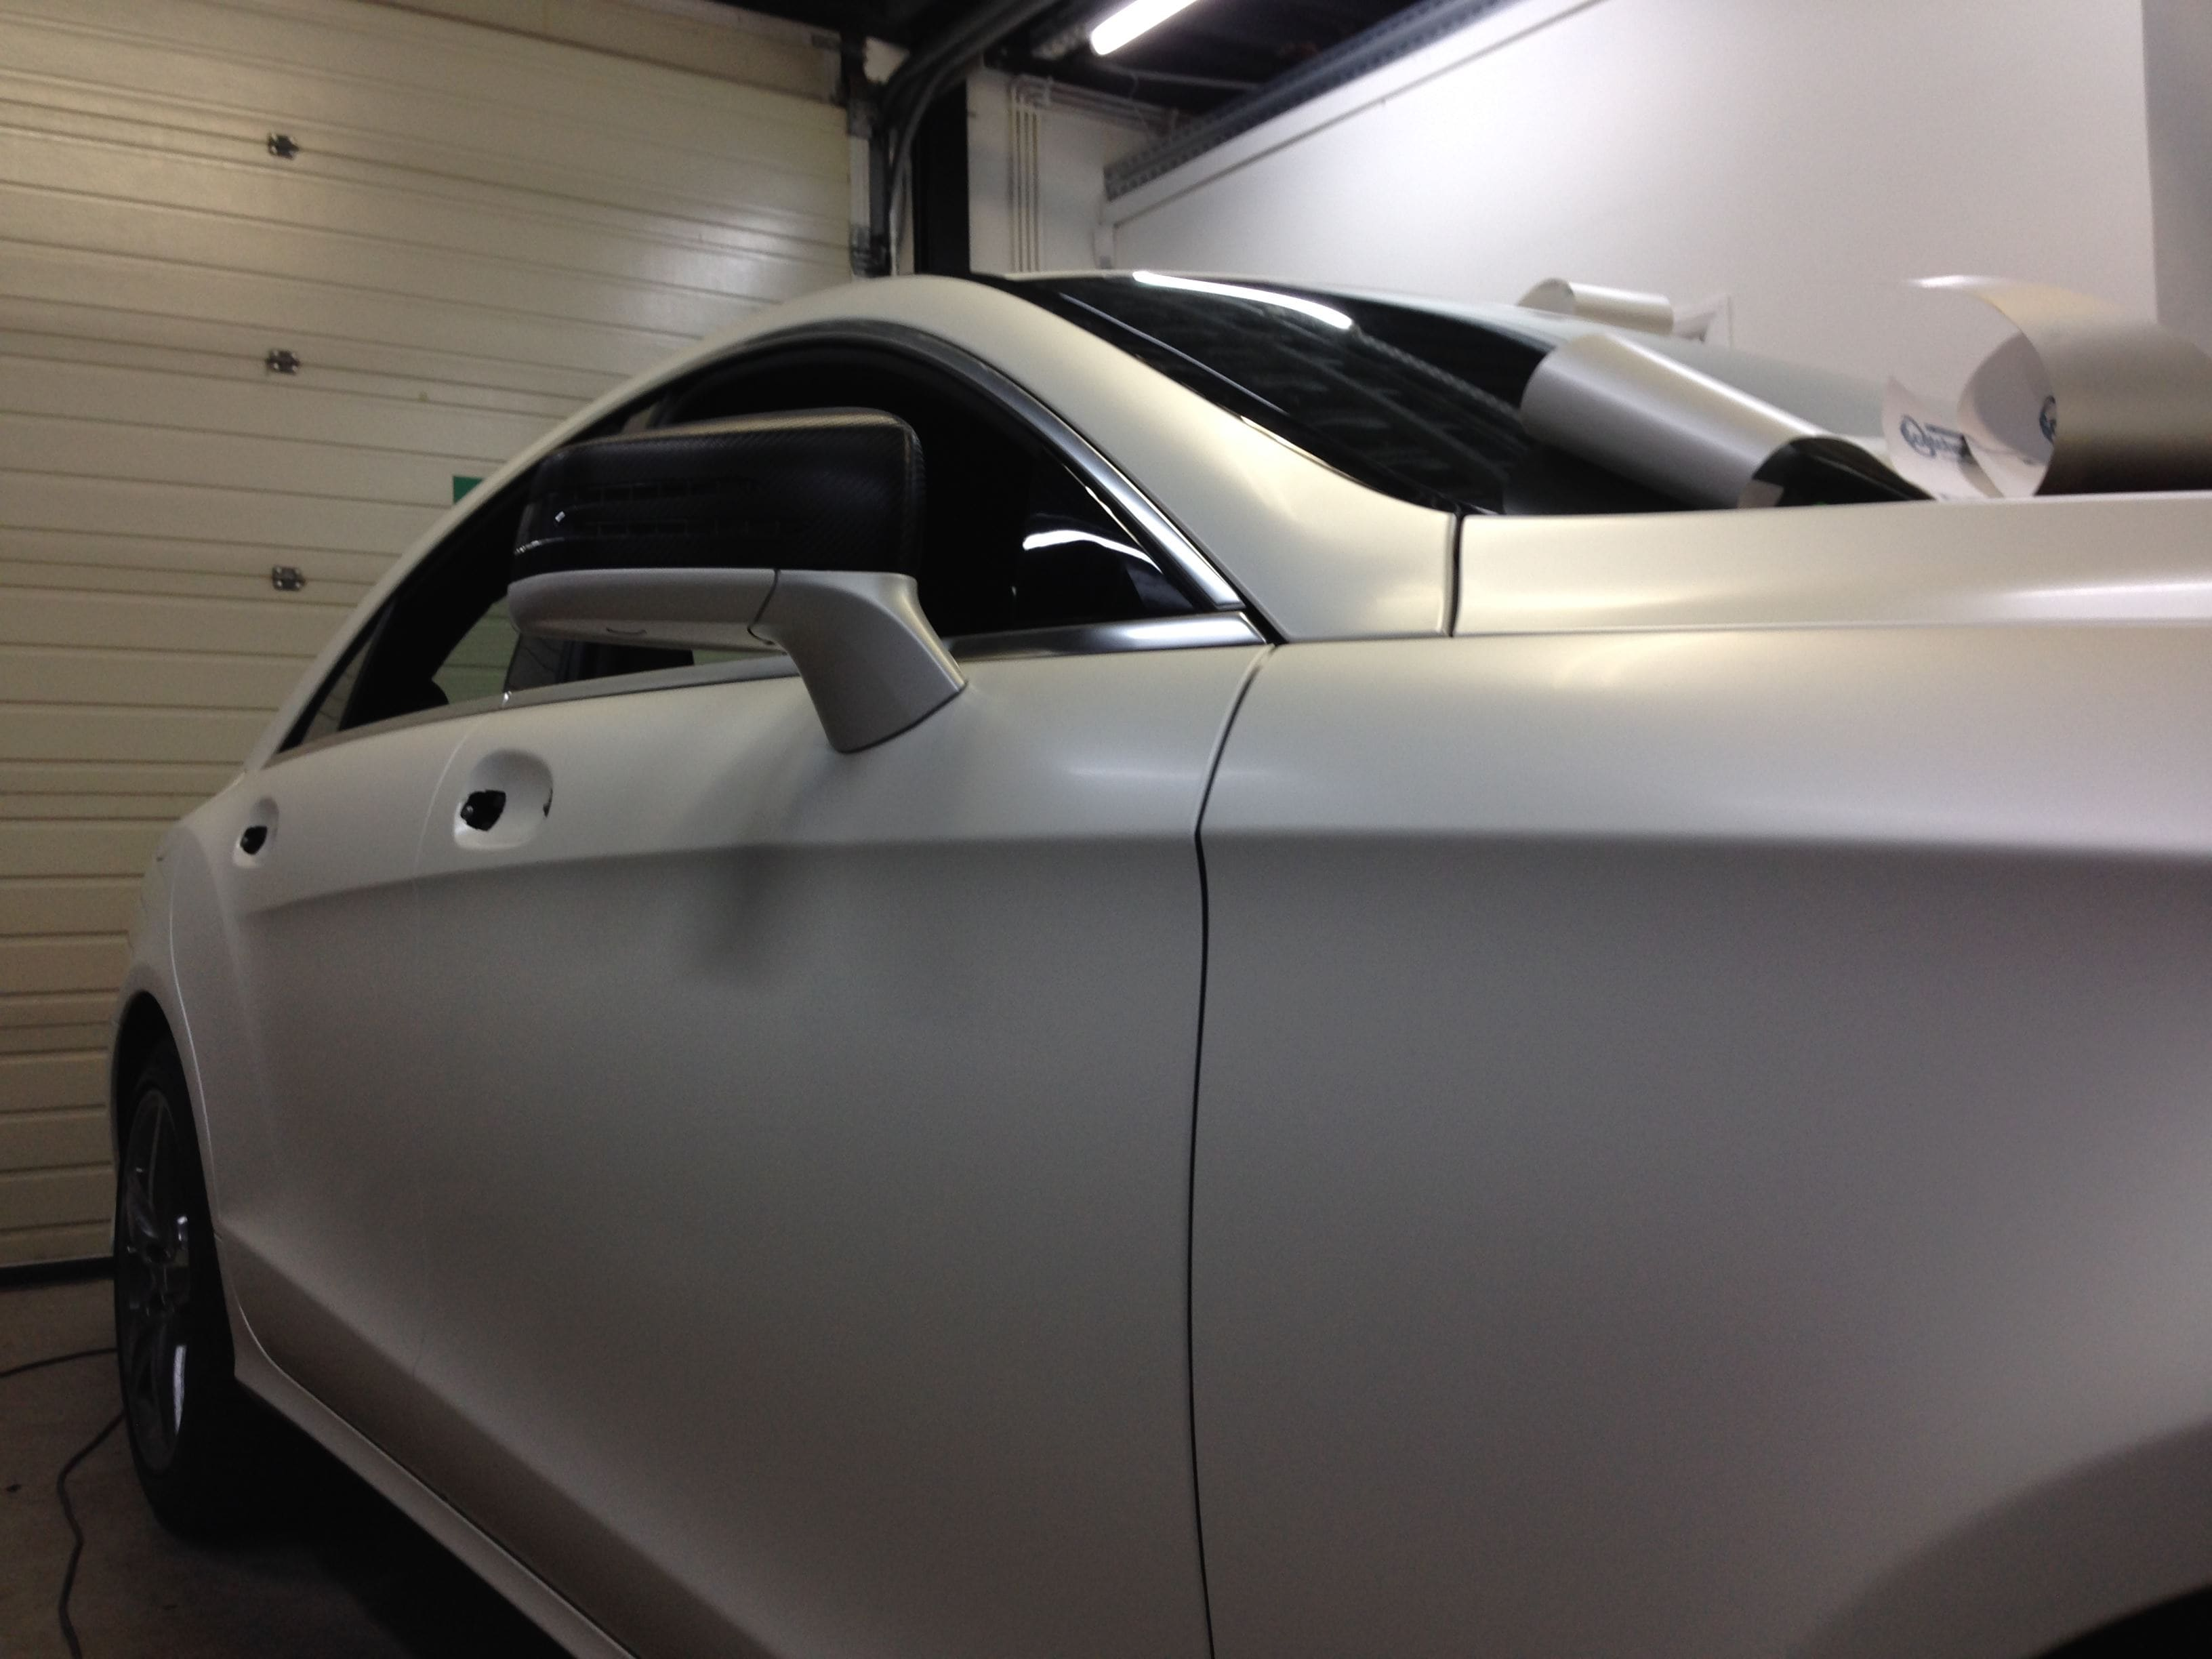 Mercedes CLS met White Satin Pearl Wrap, Carwrapping door Wrapmyride.nu Foto-nr:6190, ©2020